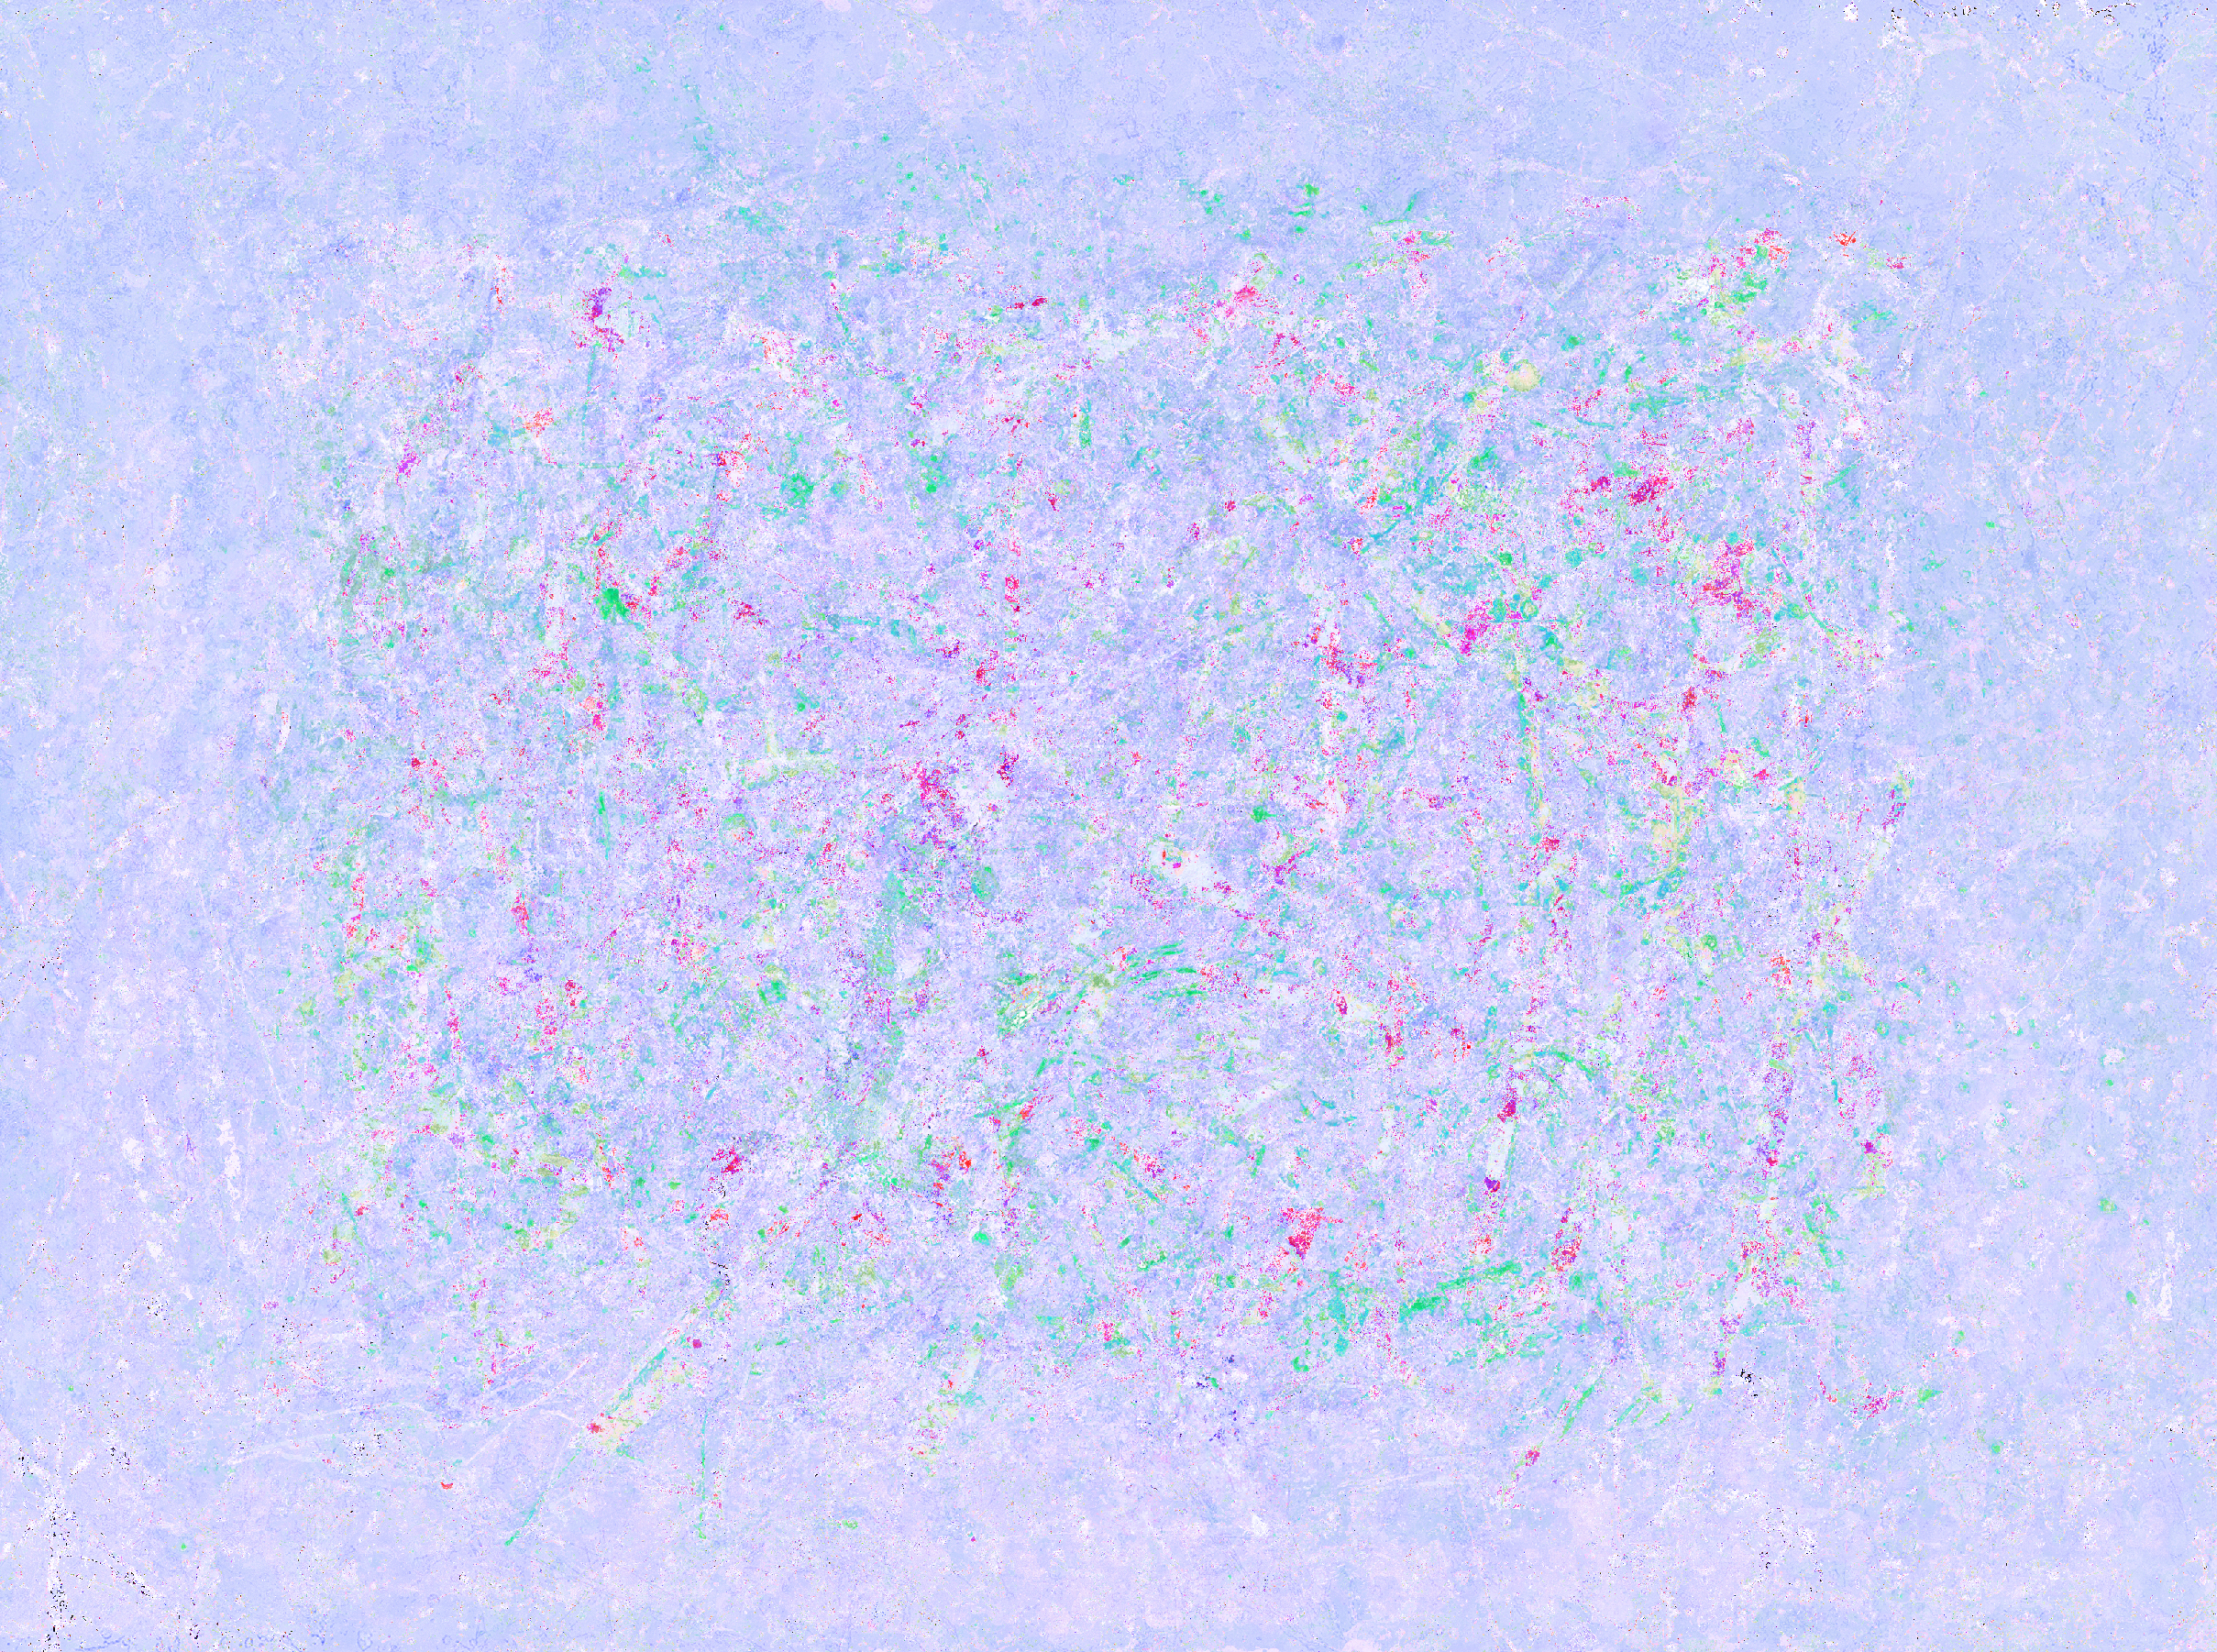 a blue on blue skip painting with splats of magenta and strokes of pale sand colors